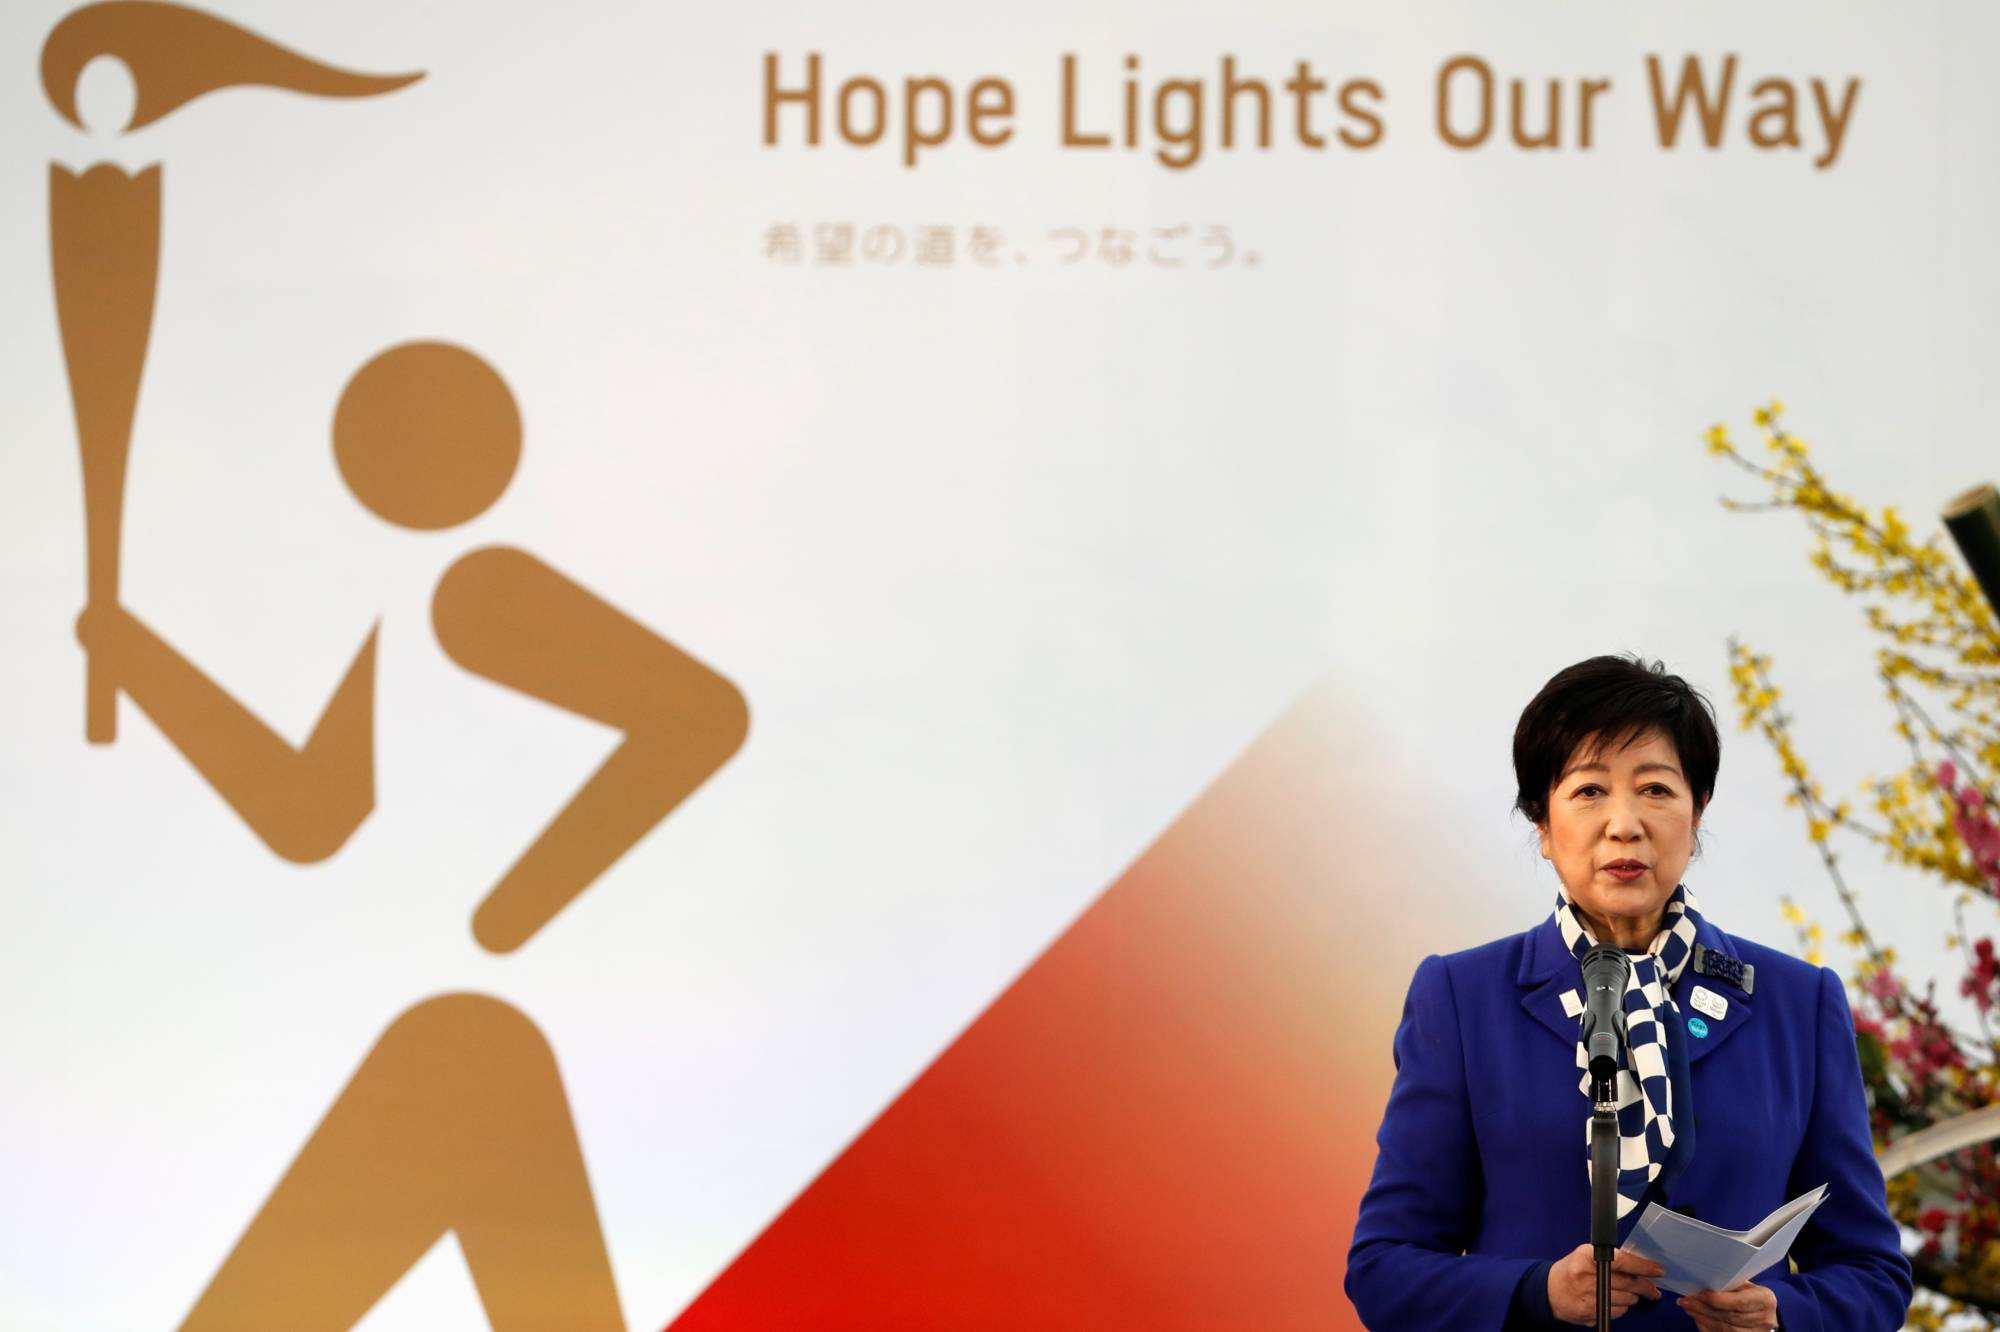 Tokyo Gov. Yuriko Koike delivers a speech at the start of the Olympic Torch Relay in Naraha, Fukushima Prefecture, on Thursday. | POOL / VIA REUTERS